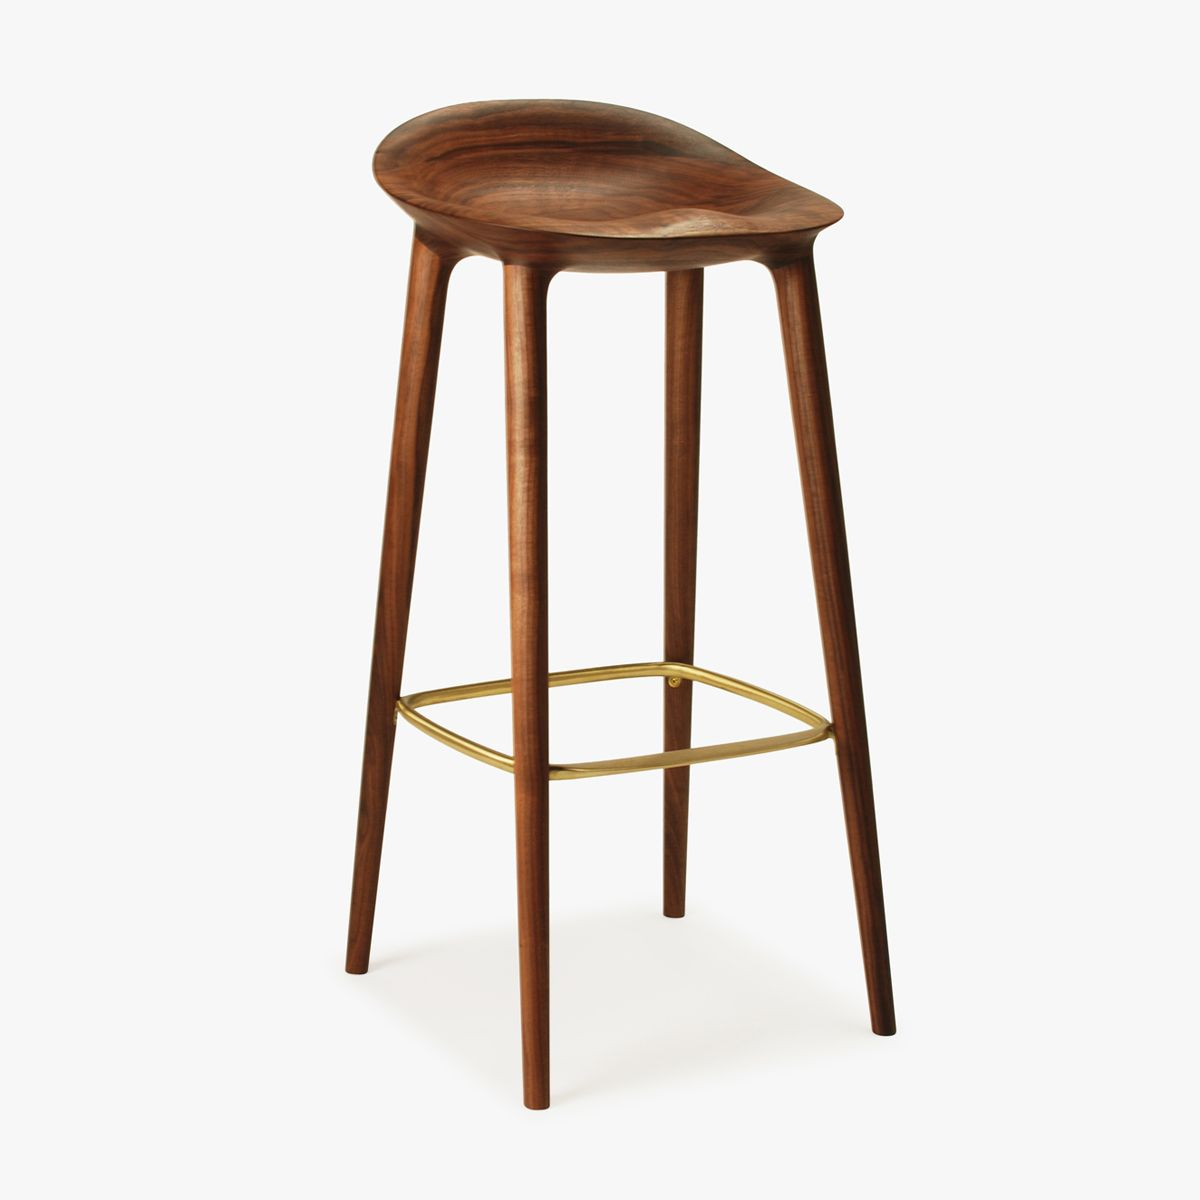 2918595a6f261d Bar Stool in 2019 | Home | Stool, Bar Stools, Luxury office chairs